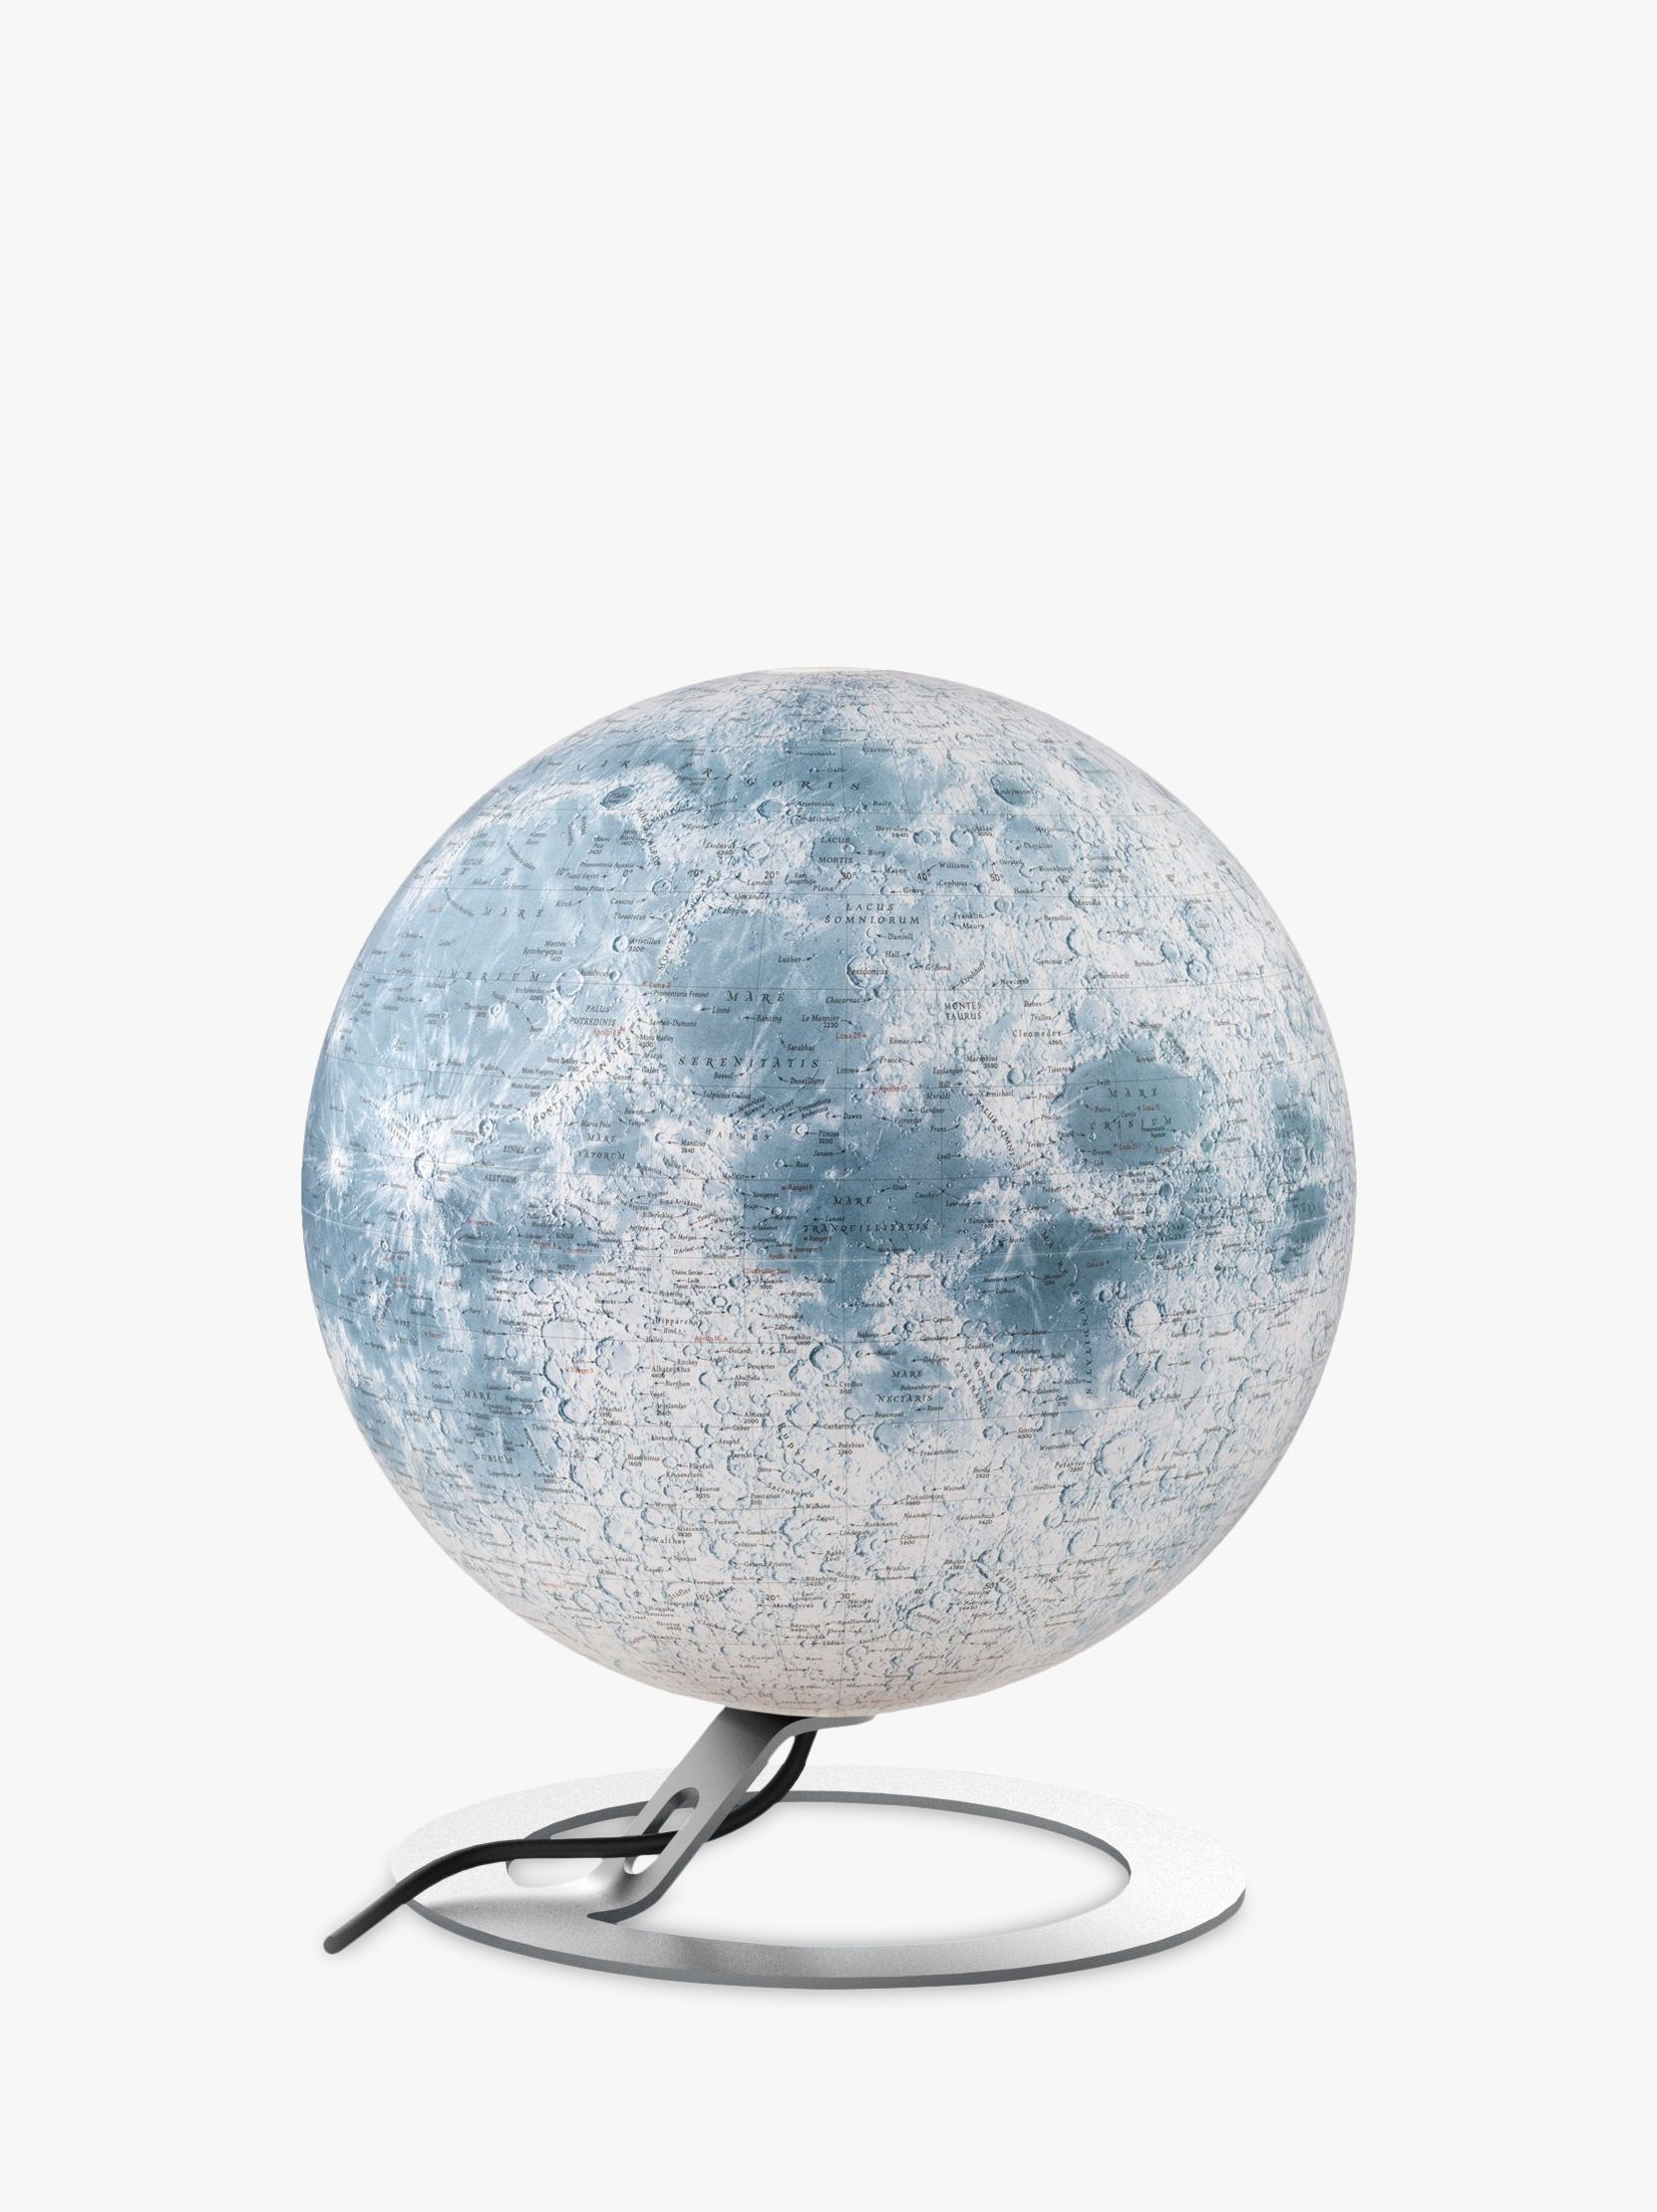 National Geographic National Geographic The Moon Globe, White, 30cm